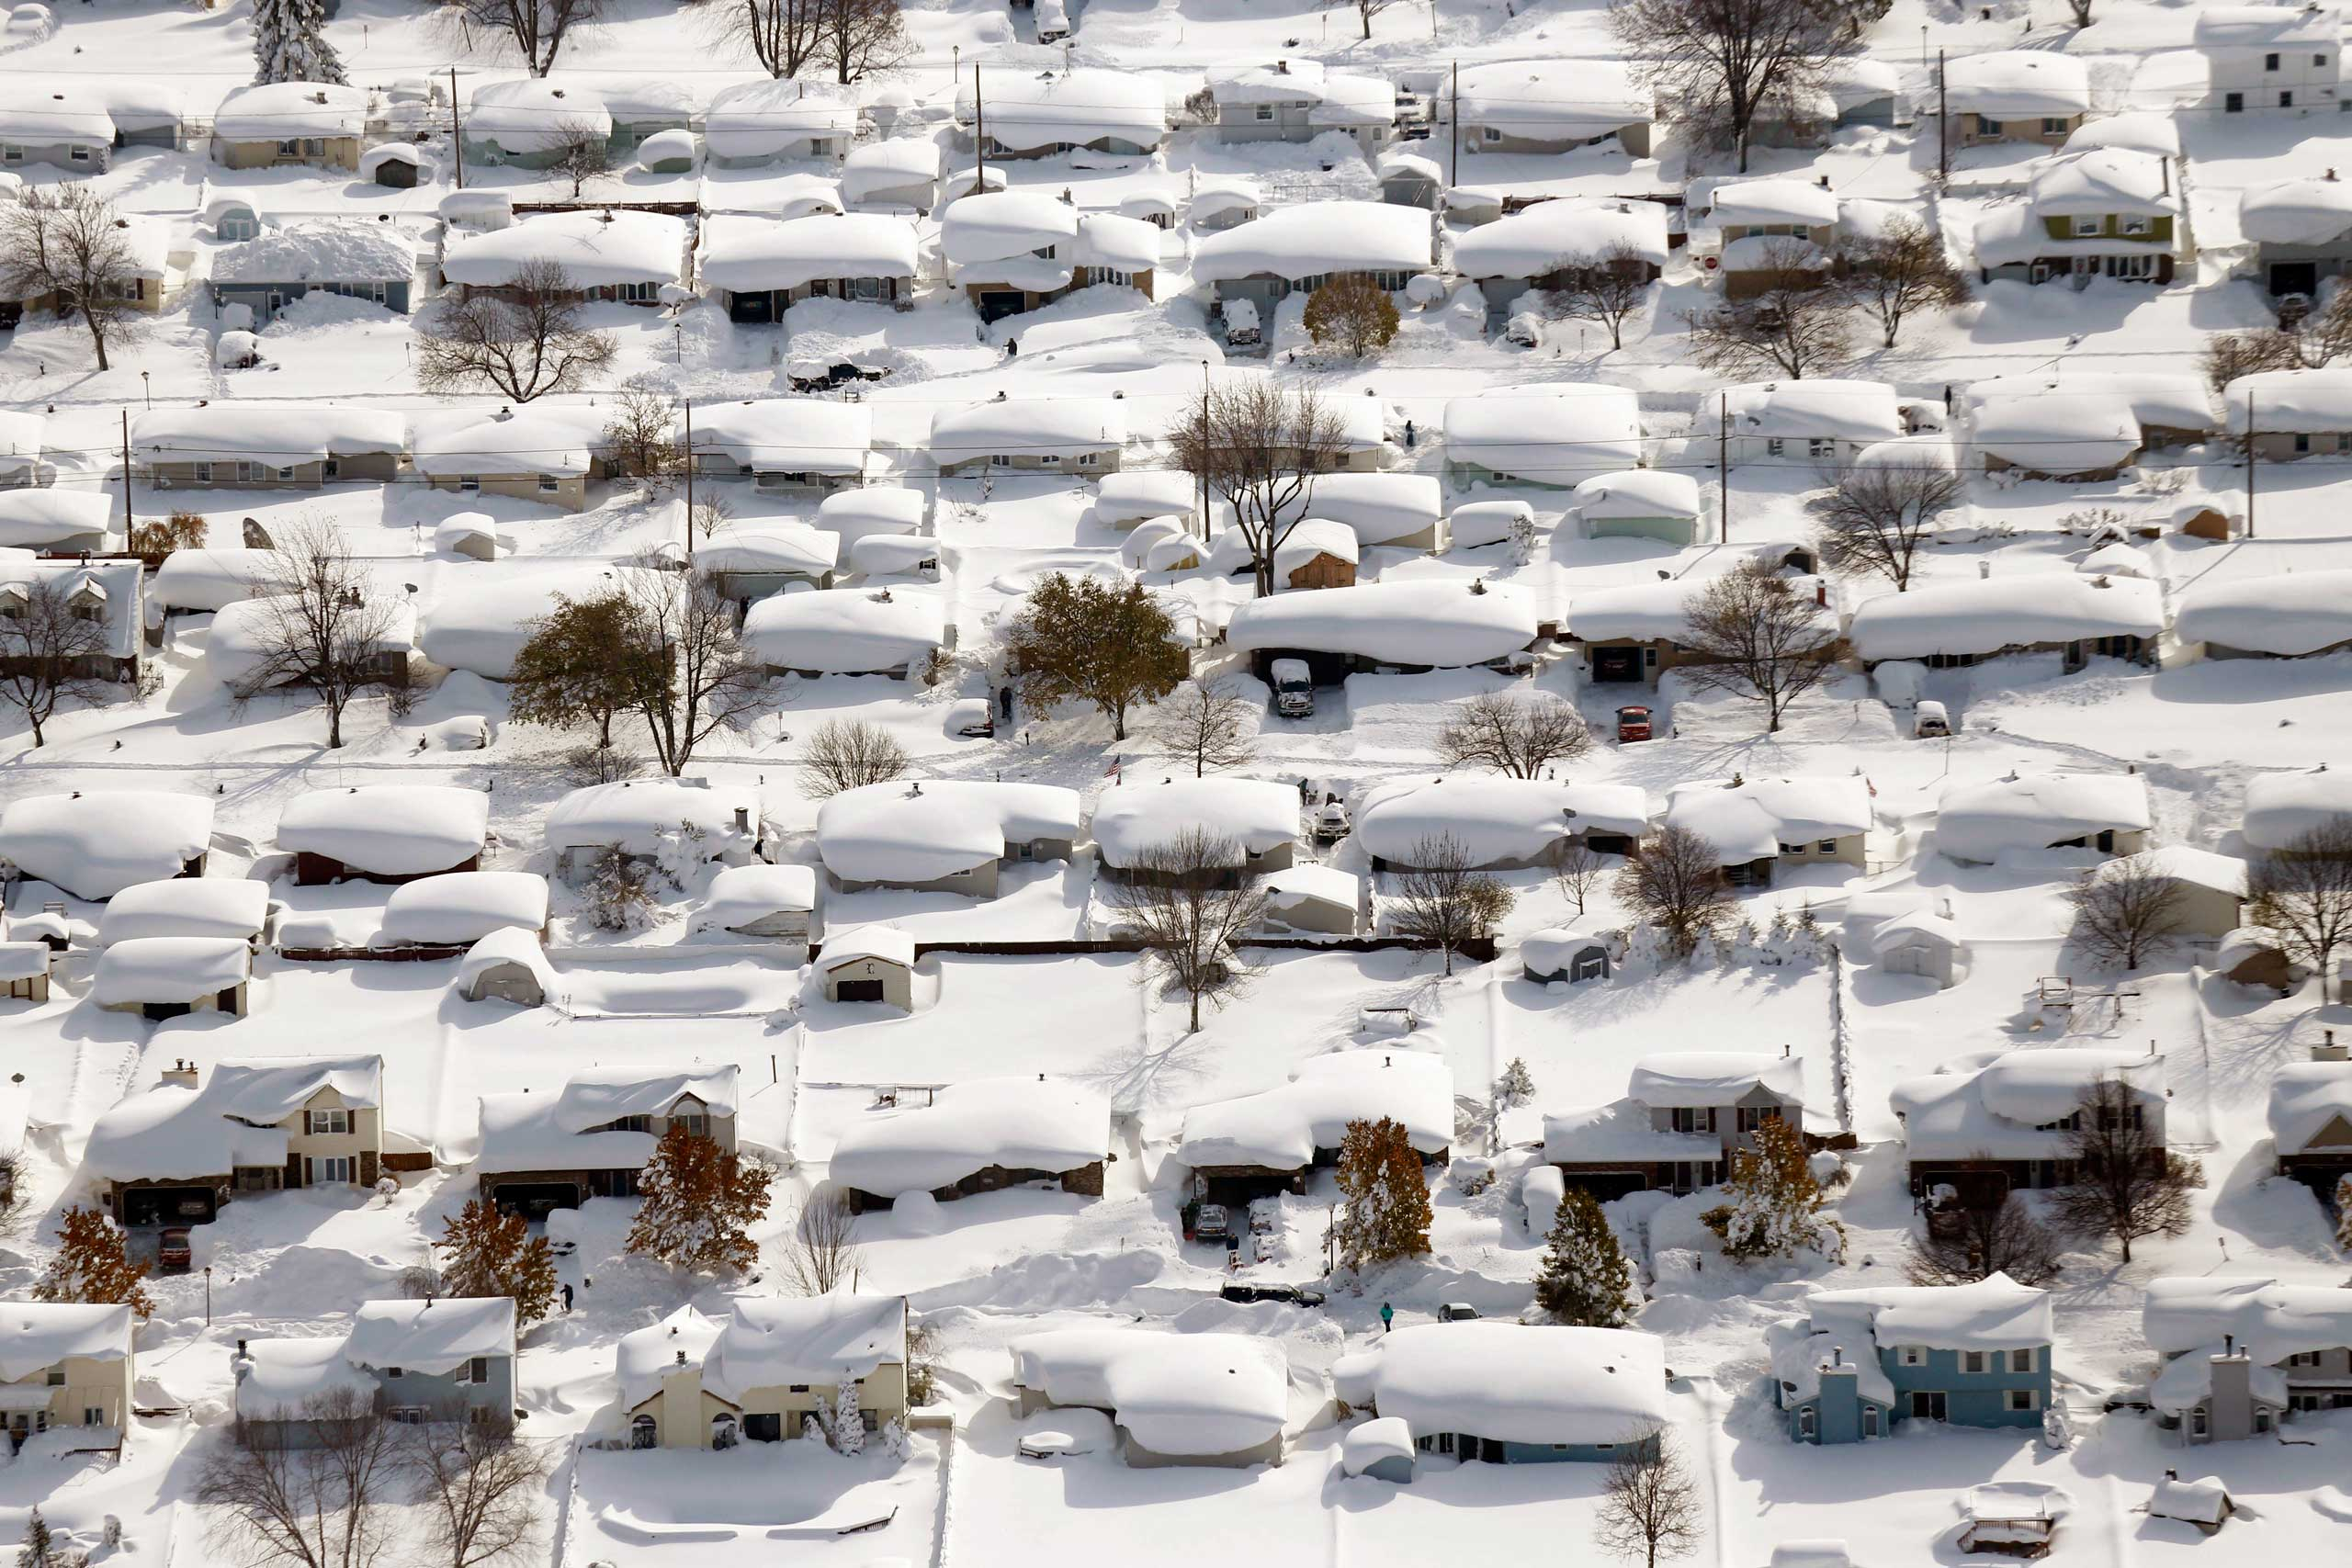 <b>Blizzard in Buffalo (Nov. 18-20, 2014)</b> Over six feet of snow descended on Buffalo, N.Y. and its suburbs, paralyzing the area. Over 100 people were stranded and at least six people died.